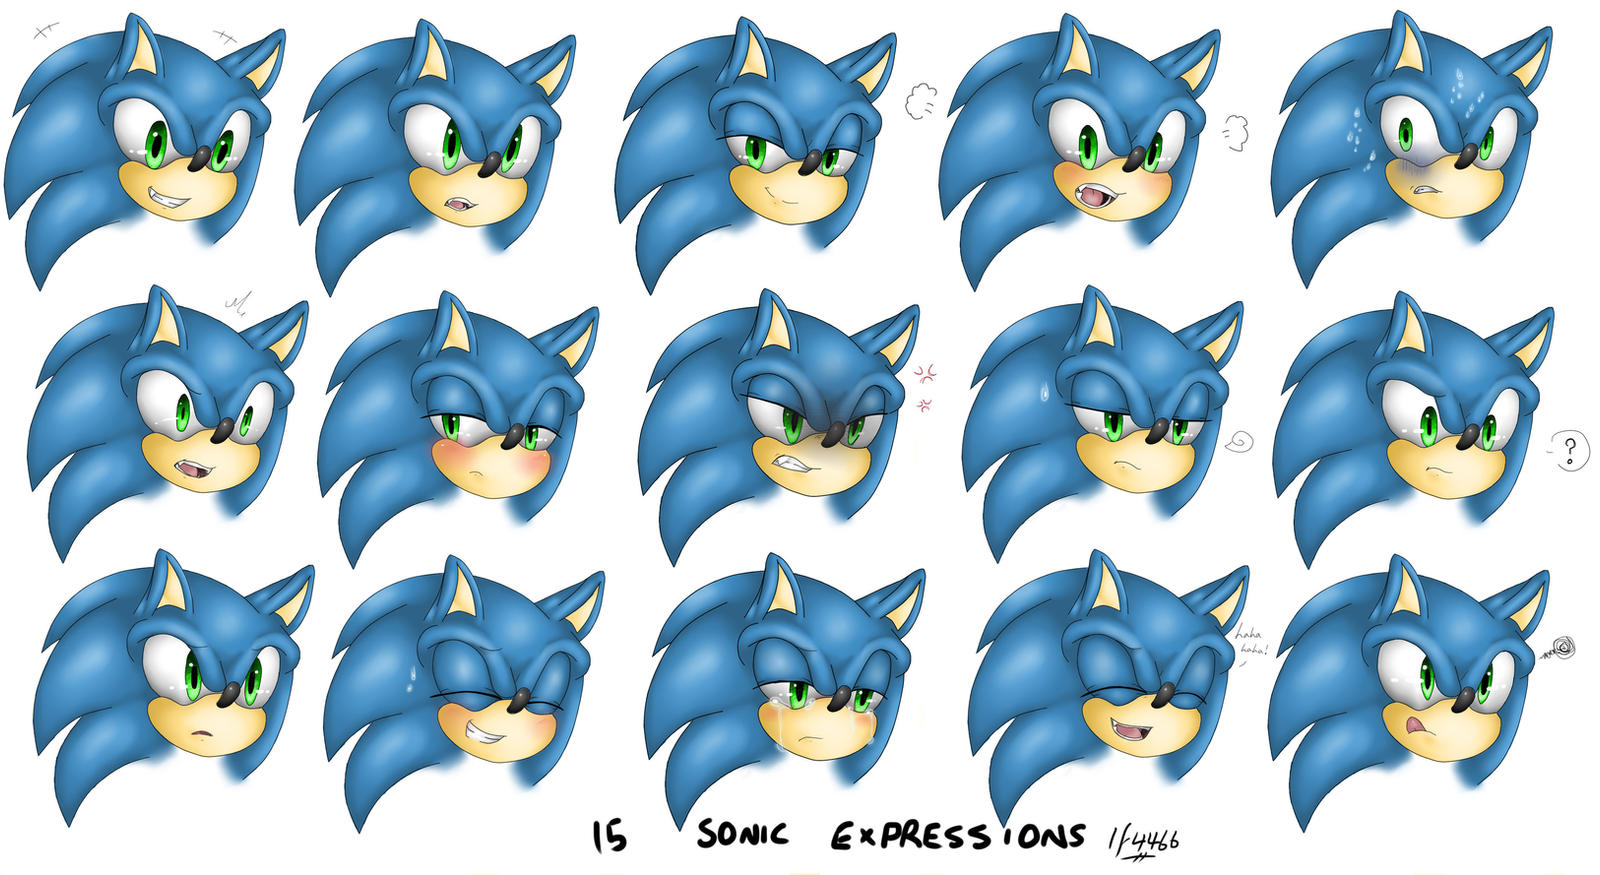 15 Sonic Expressions Study by BlueNeedle-Inu